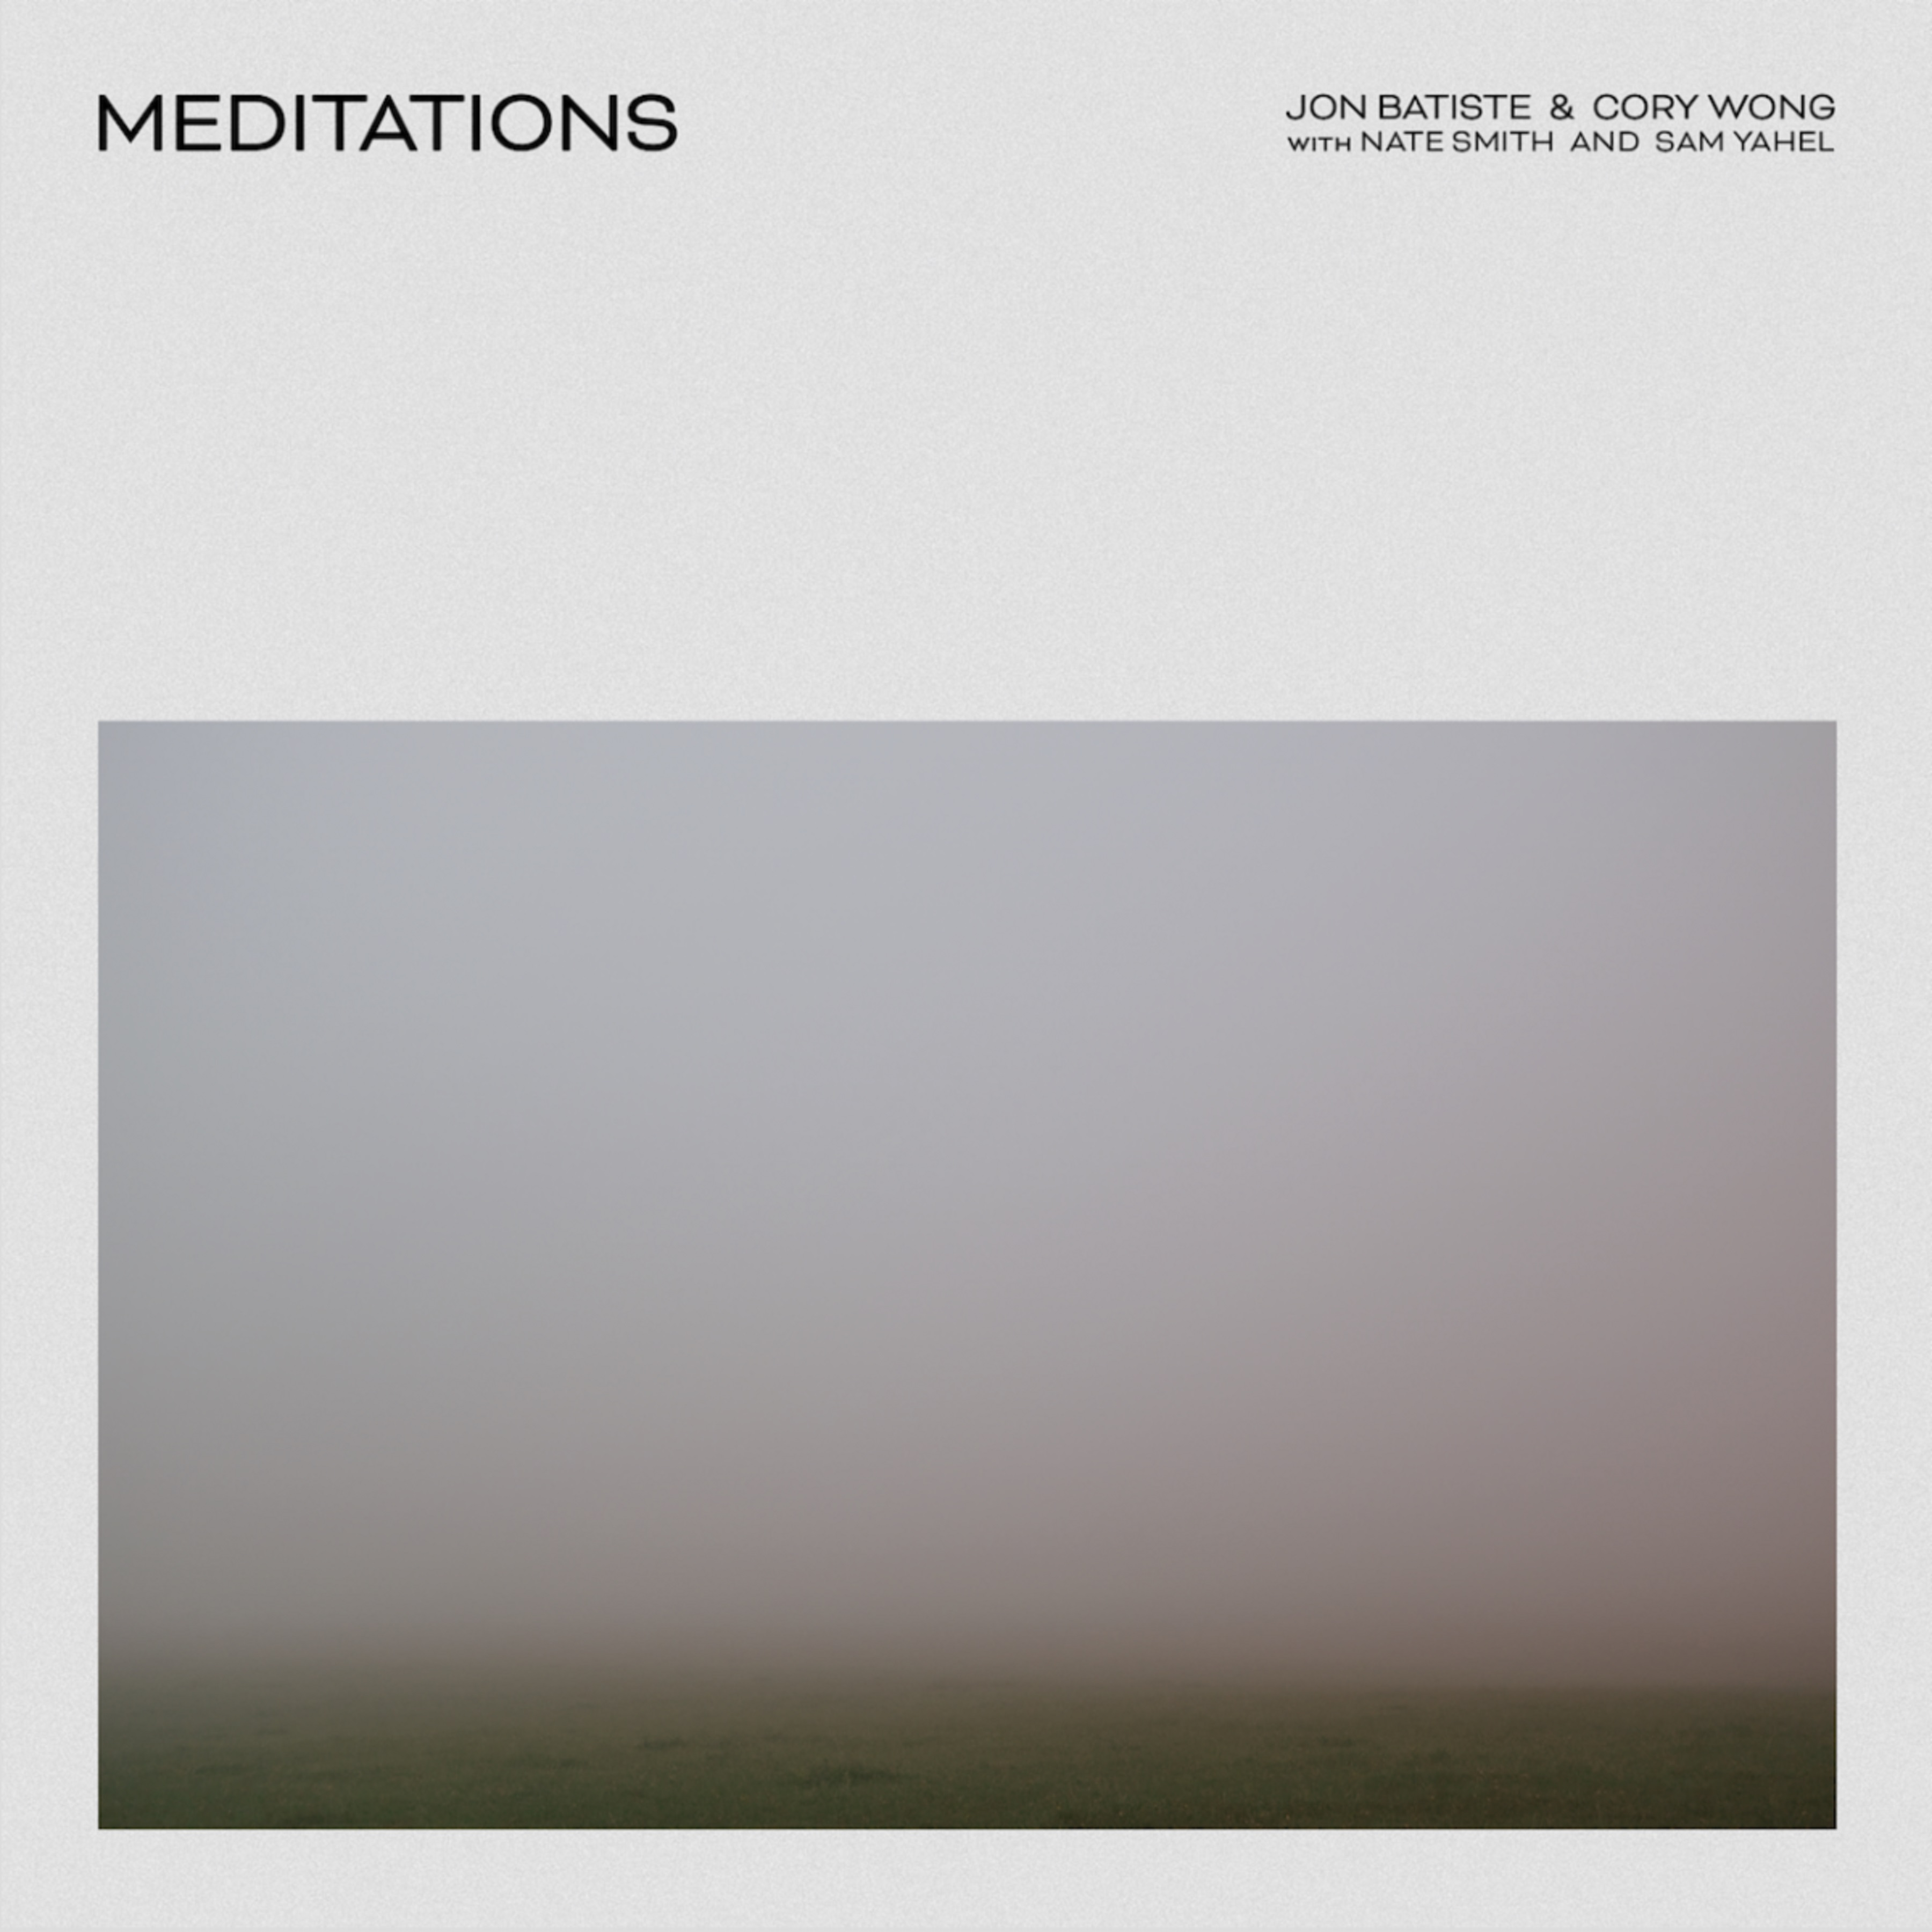 Jon Batiste and Cory Wong release new album; Meditations out Now